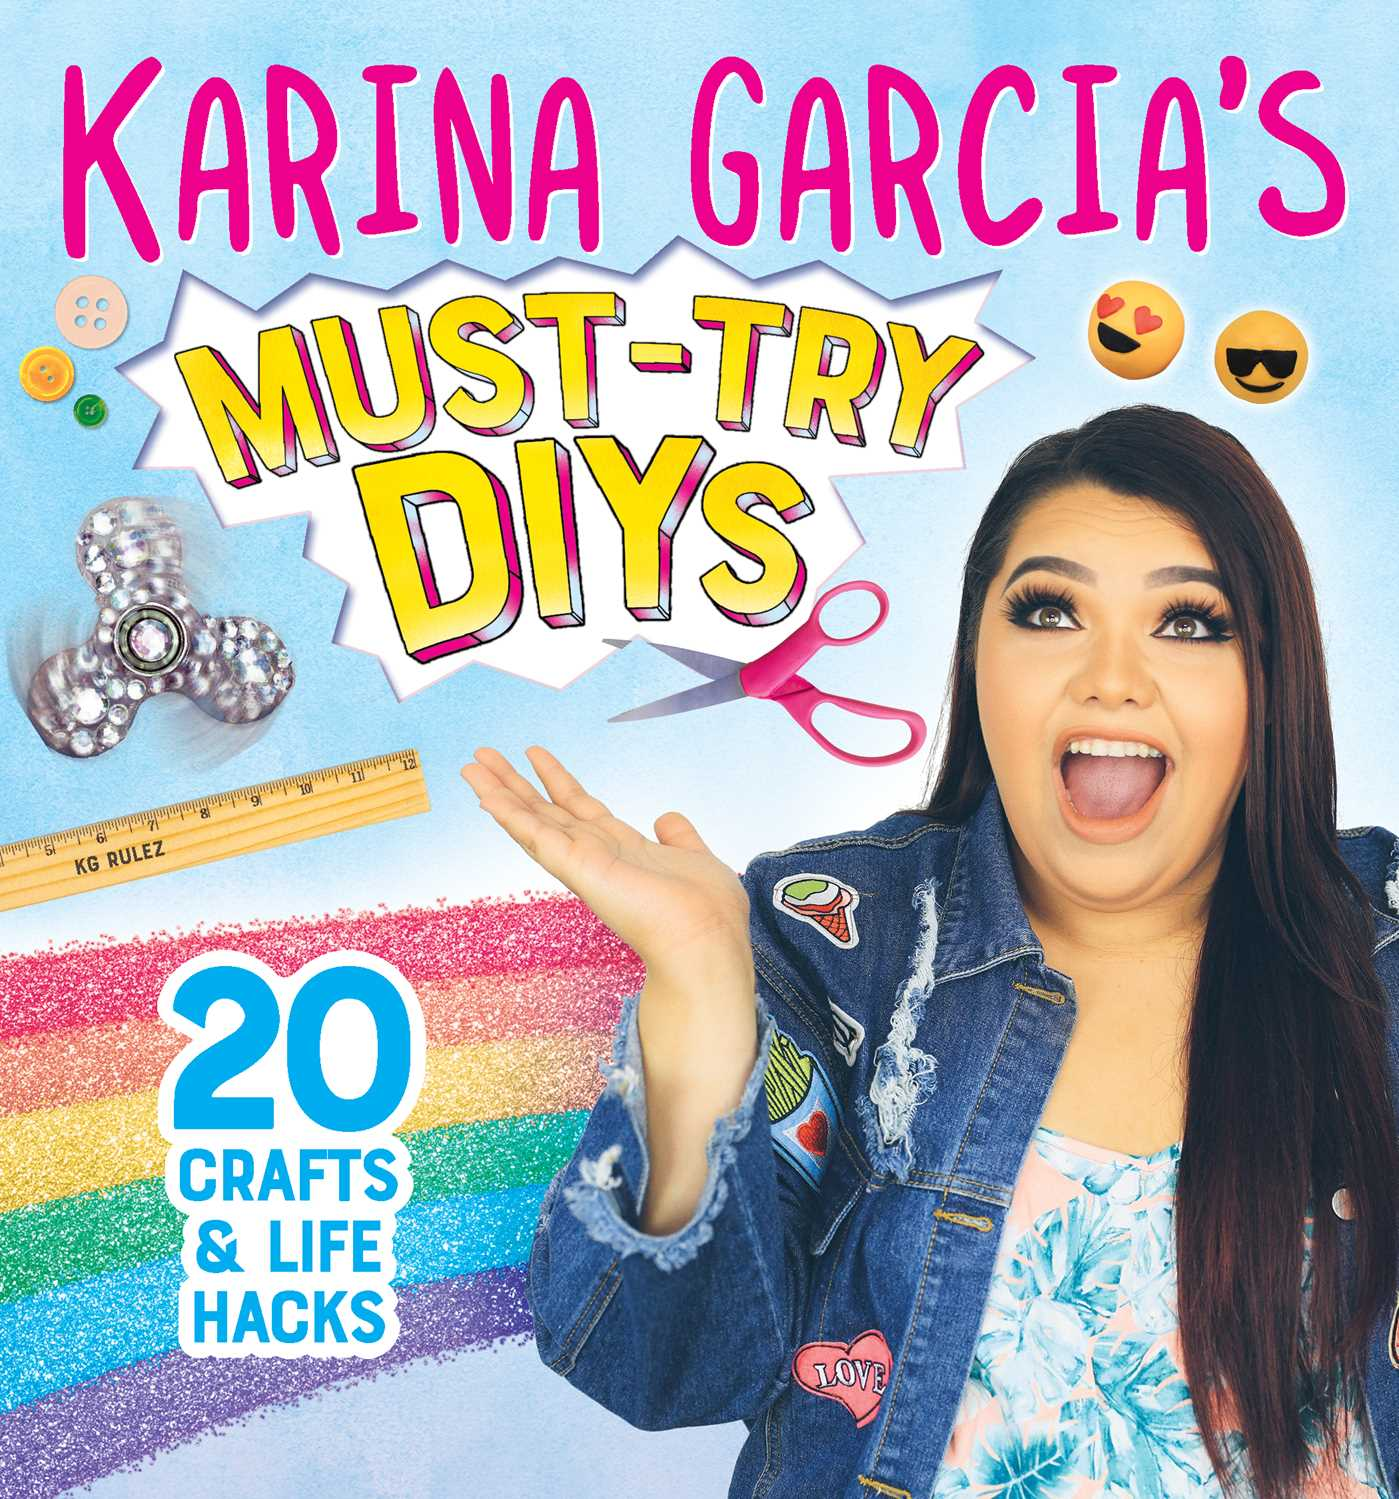 Karina garcias must try diys 20 crafts life hacks 9781499808612 hr